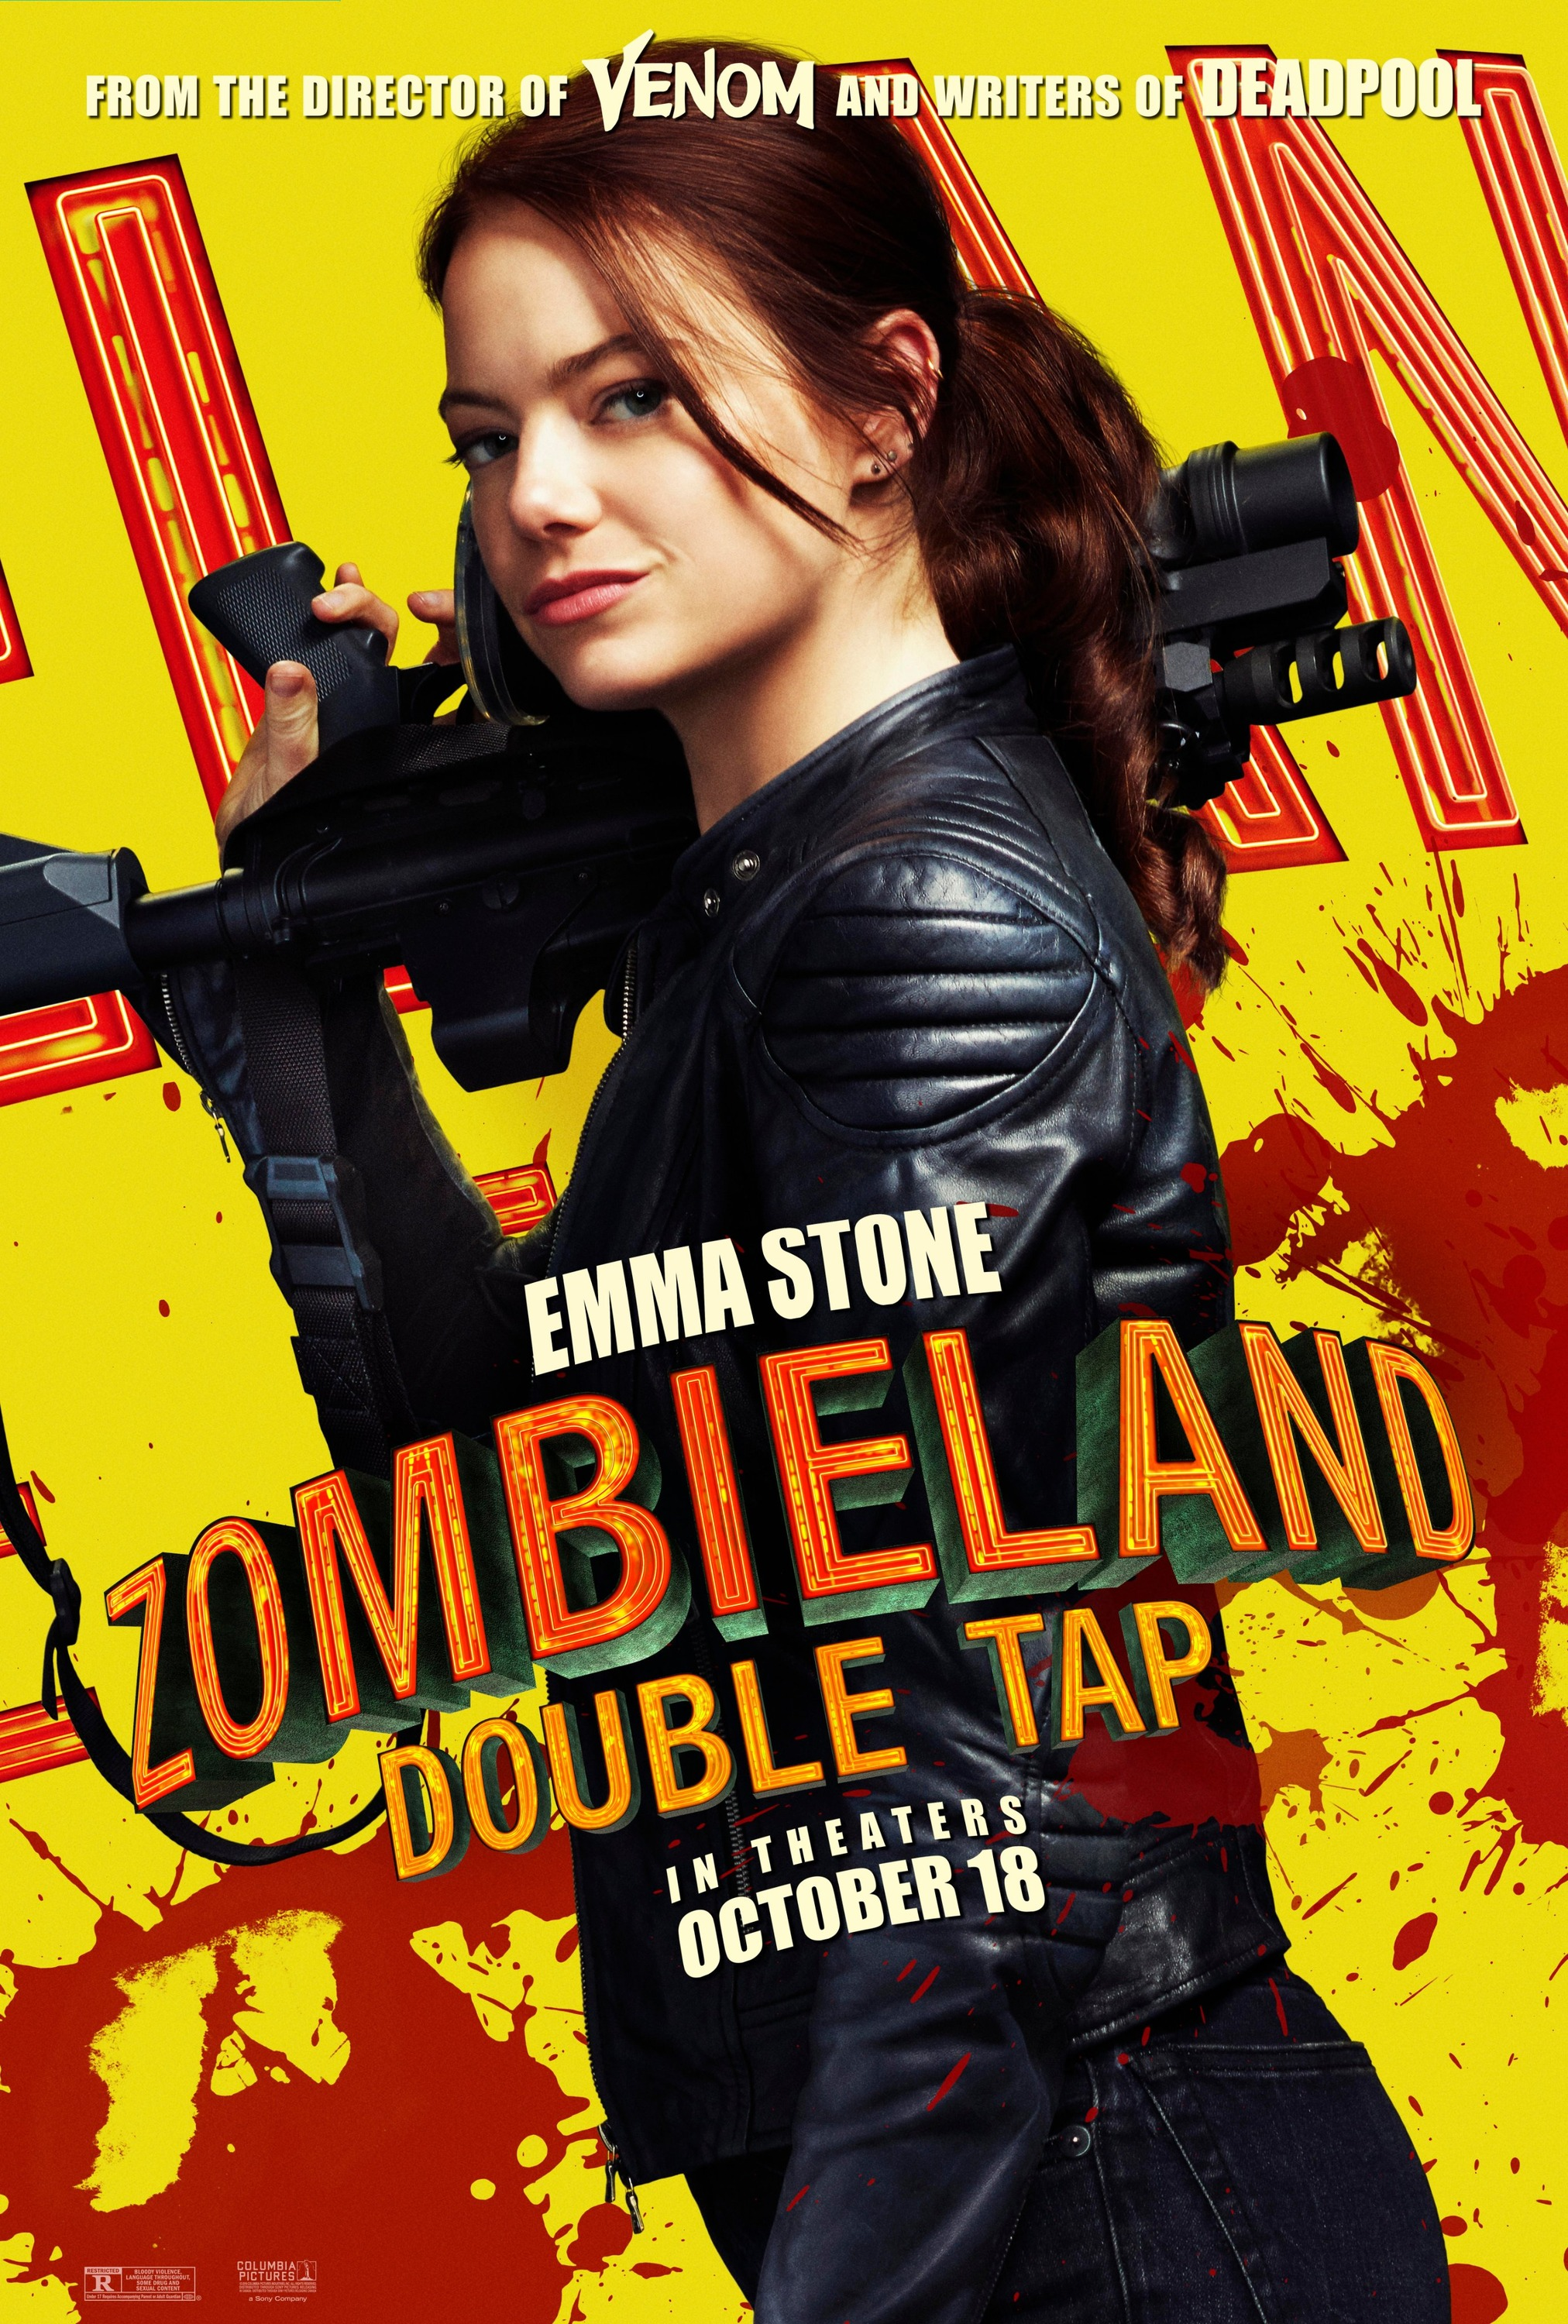 Zombieland: Double Tap (2019) Character Poster - Emma Stone as Wichita